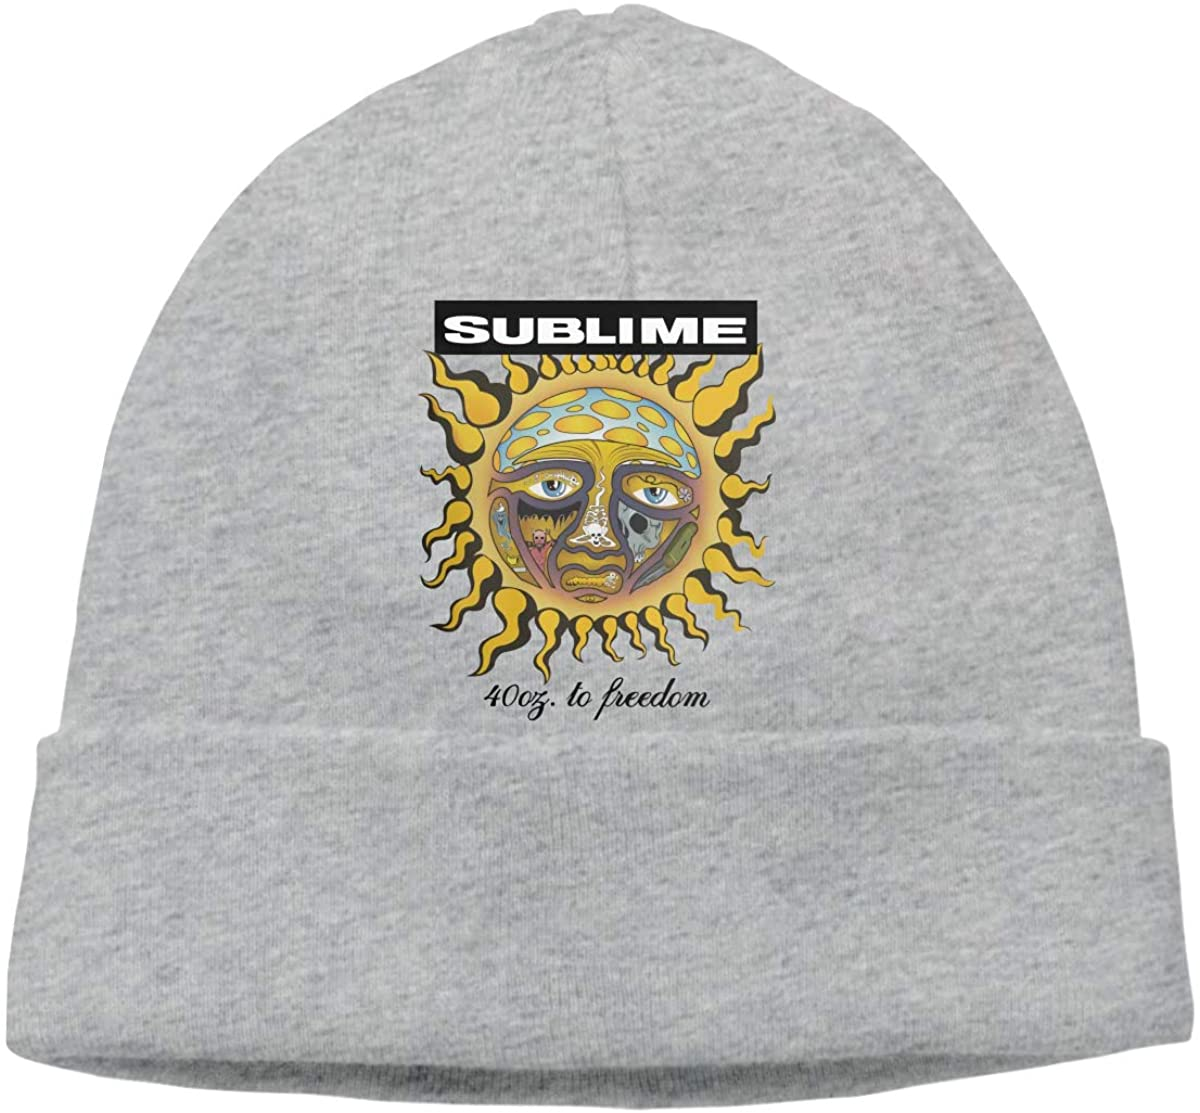 Not Sublime 40oz to Freedom Comfortable to Go Out Hedging Cap Hat Chapeau Headgear Gray